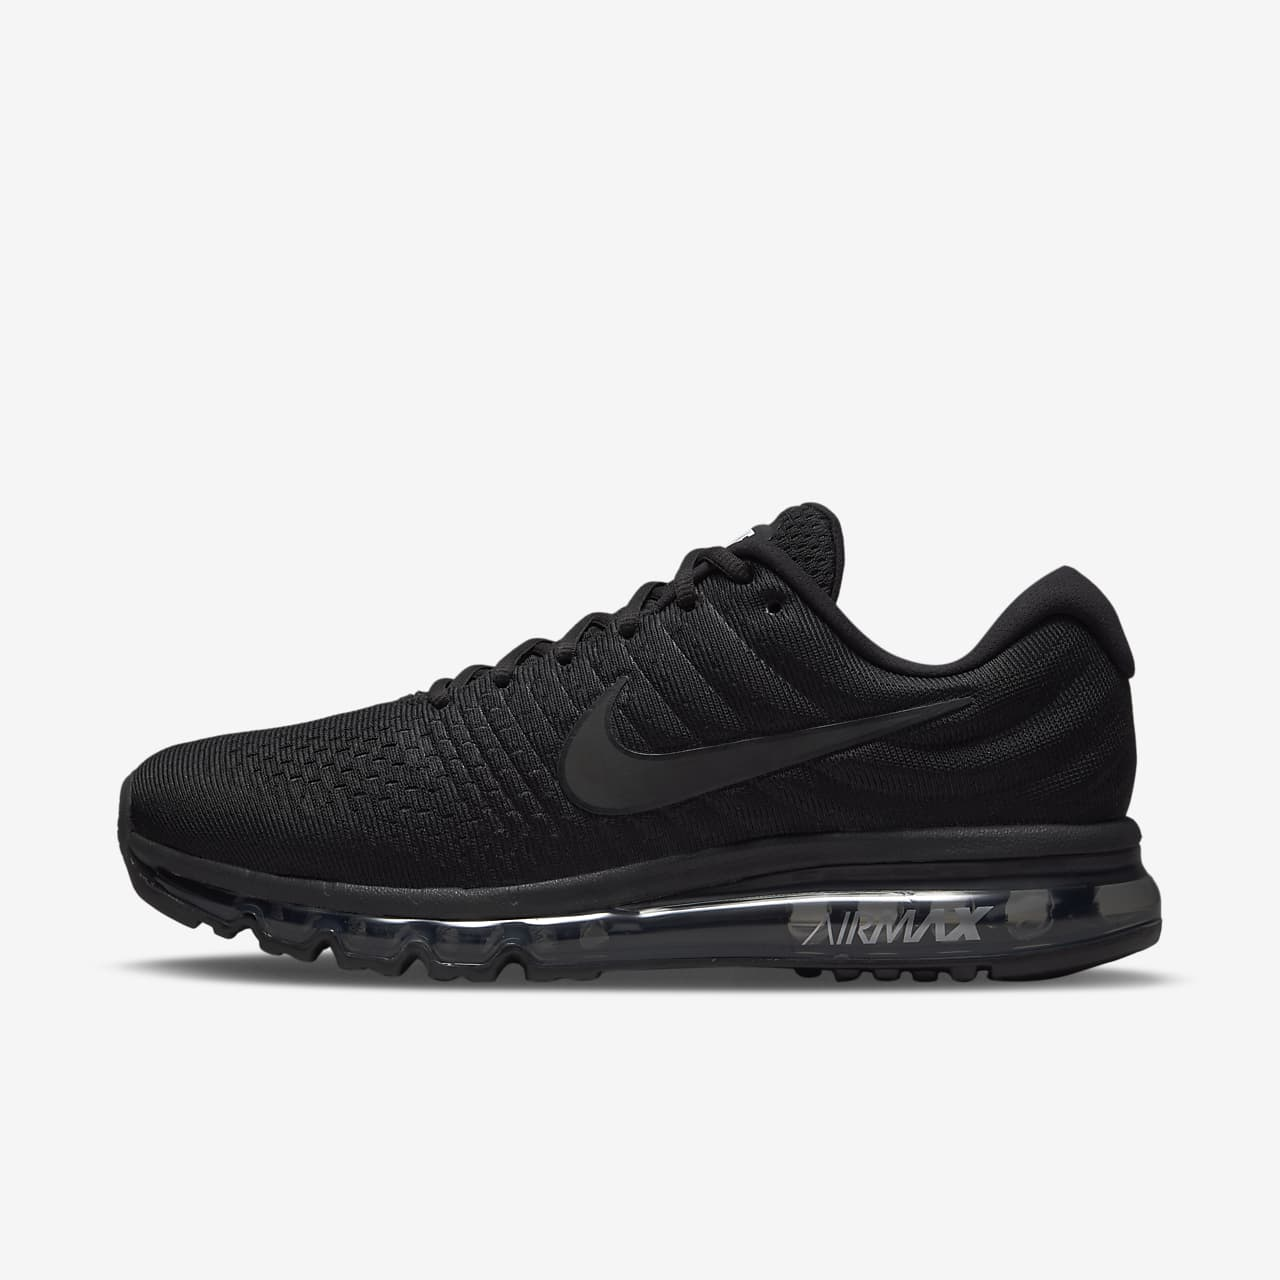 nike air max 2018 elite men's nz